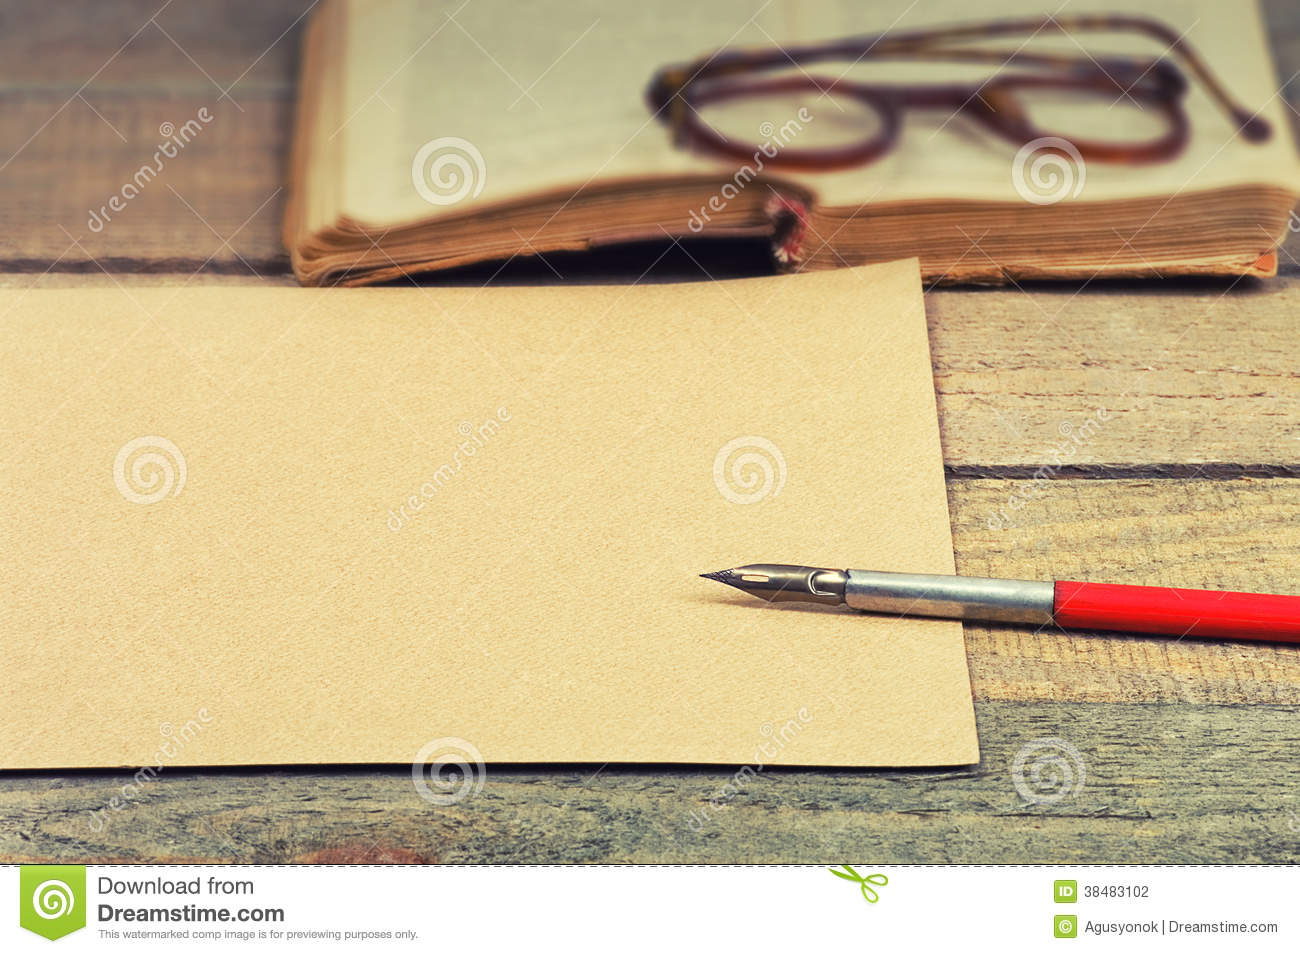 Download Old Paper Pen Book And Glasses Stock Photo